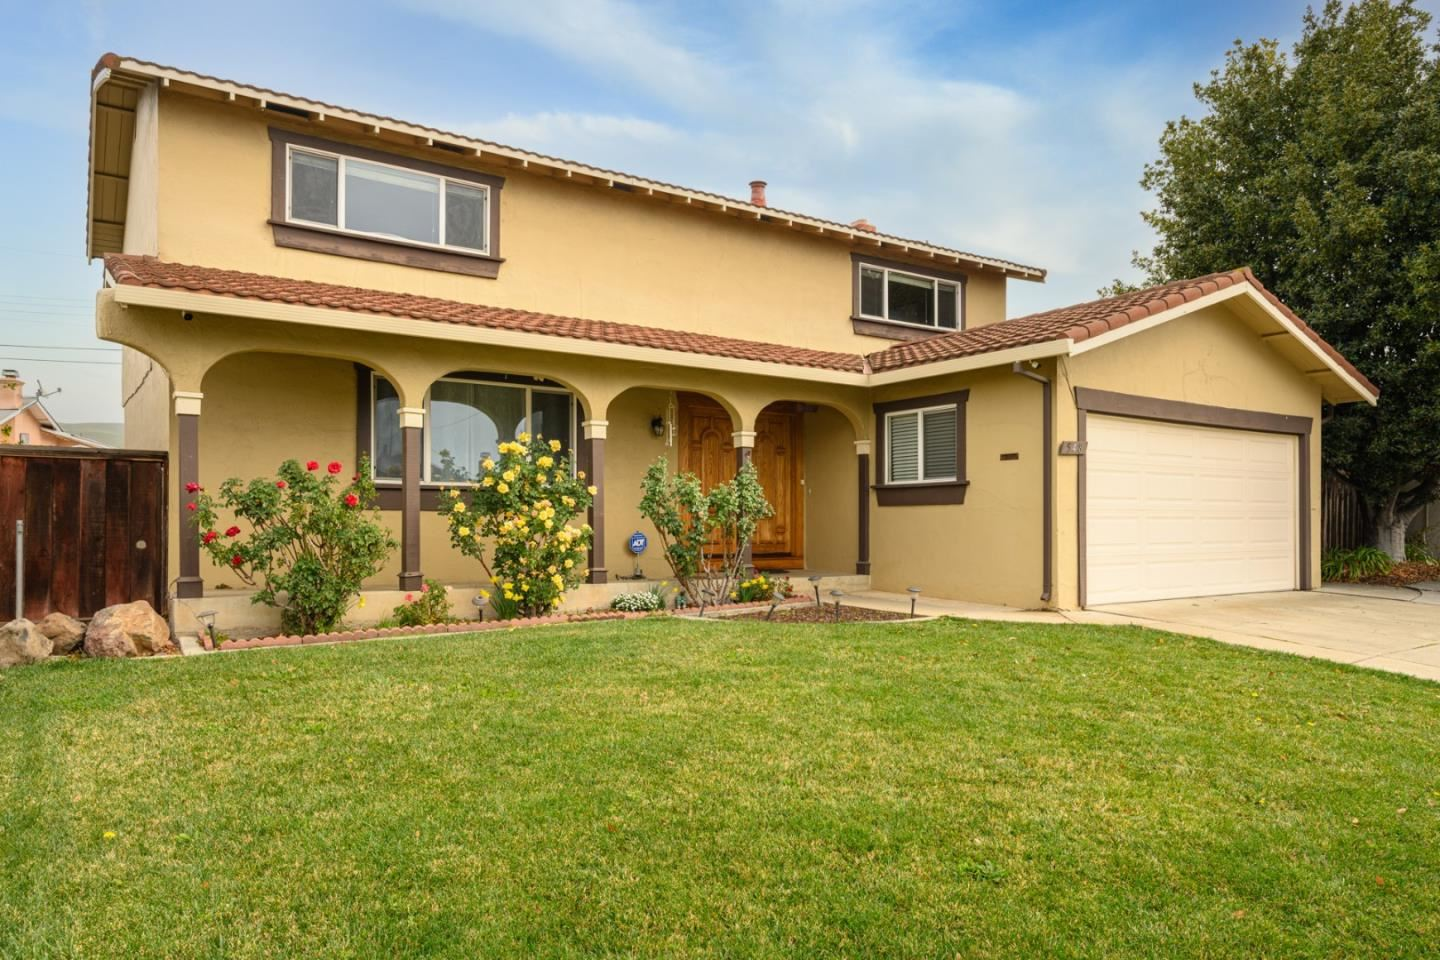 Photo for 548 Bryce CT, MILPITAS, CA 95035 (MLS # ML81829429)